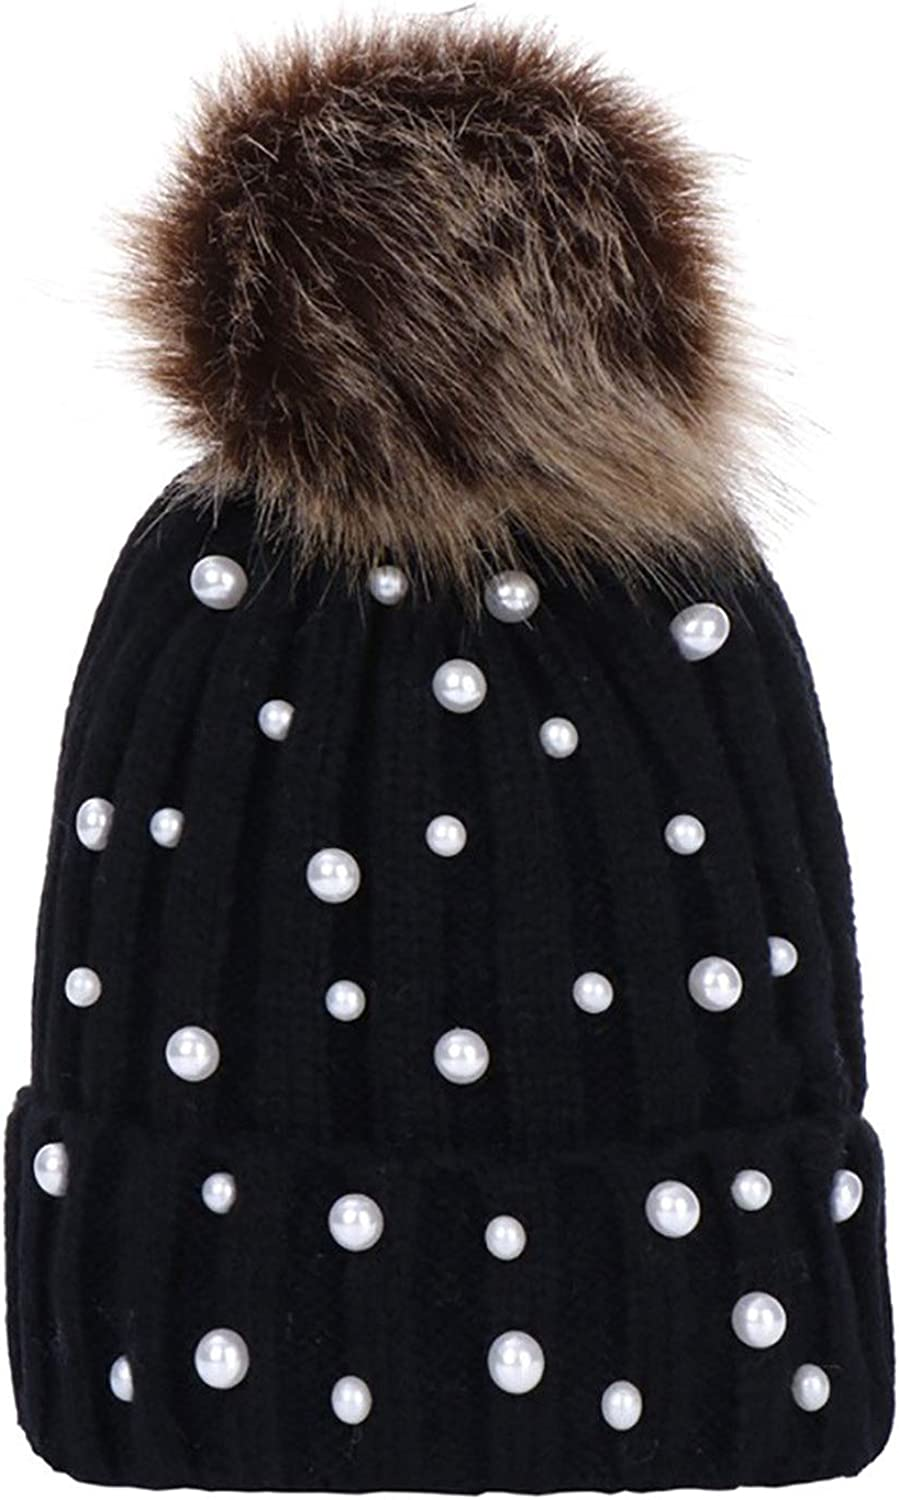 Fur Pom Pom Winter Hats for Women Cap Girls hat Knitted Beanies Cap Thick Pearls Decoration Cap